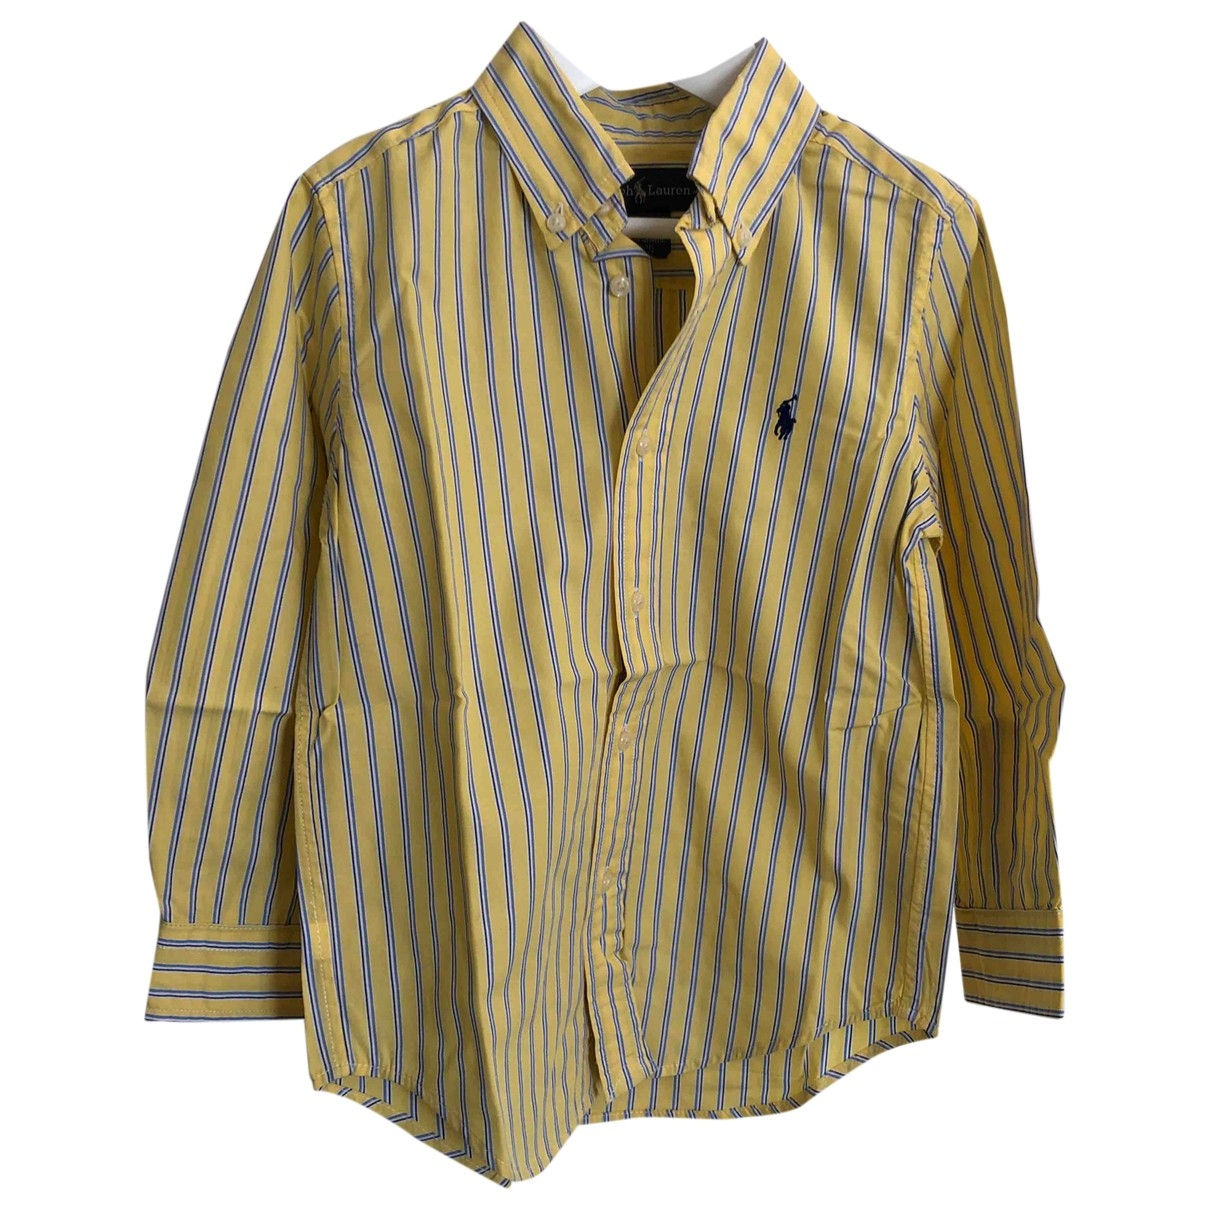 Ralph Lauren \N Yellow Cotton  top for Kids 4 years - until 40 inches UK